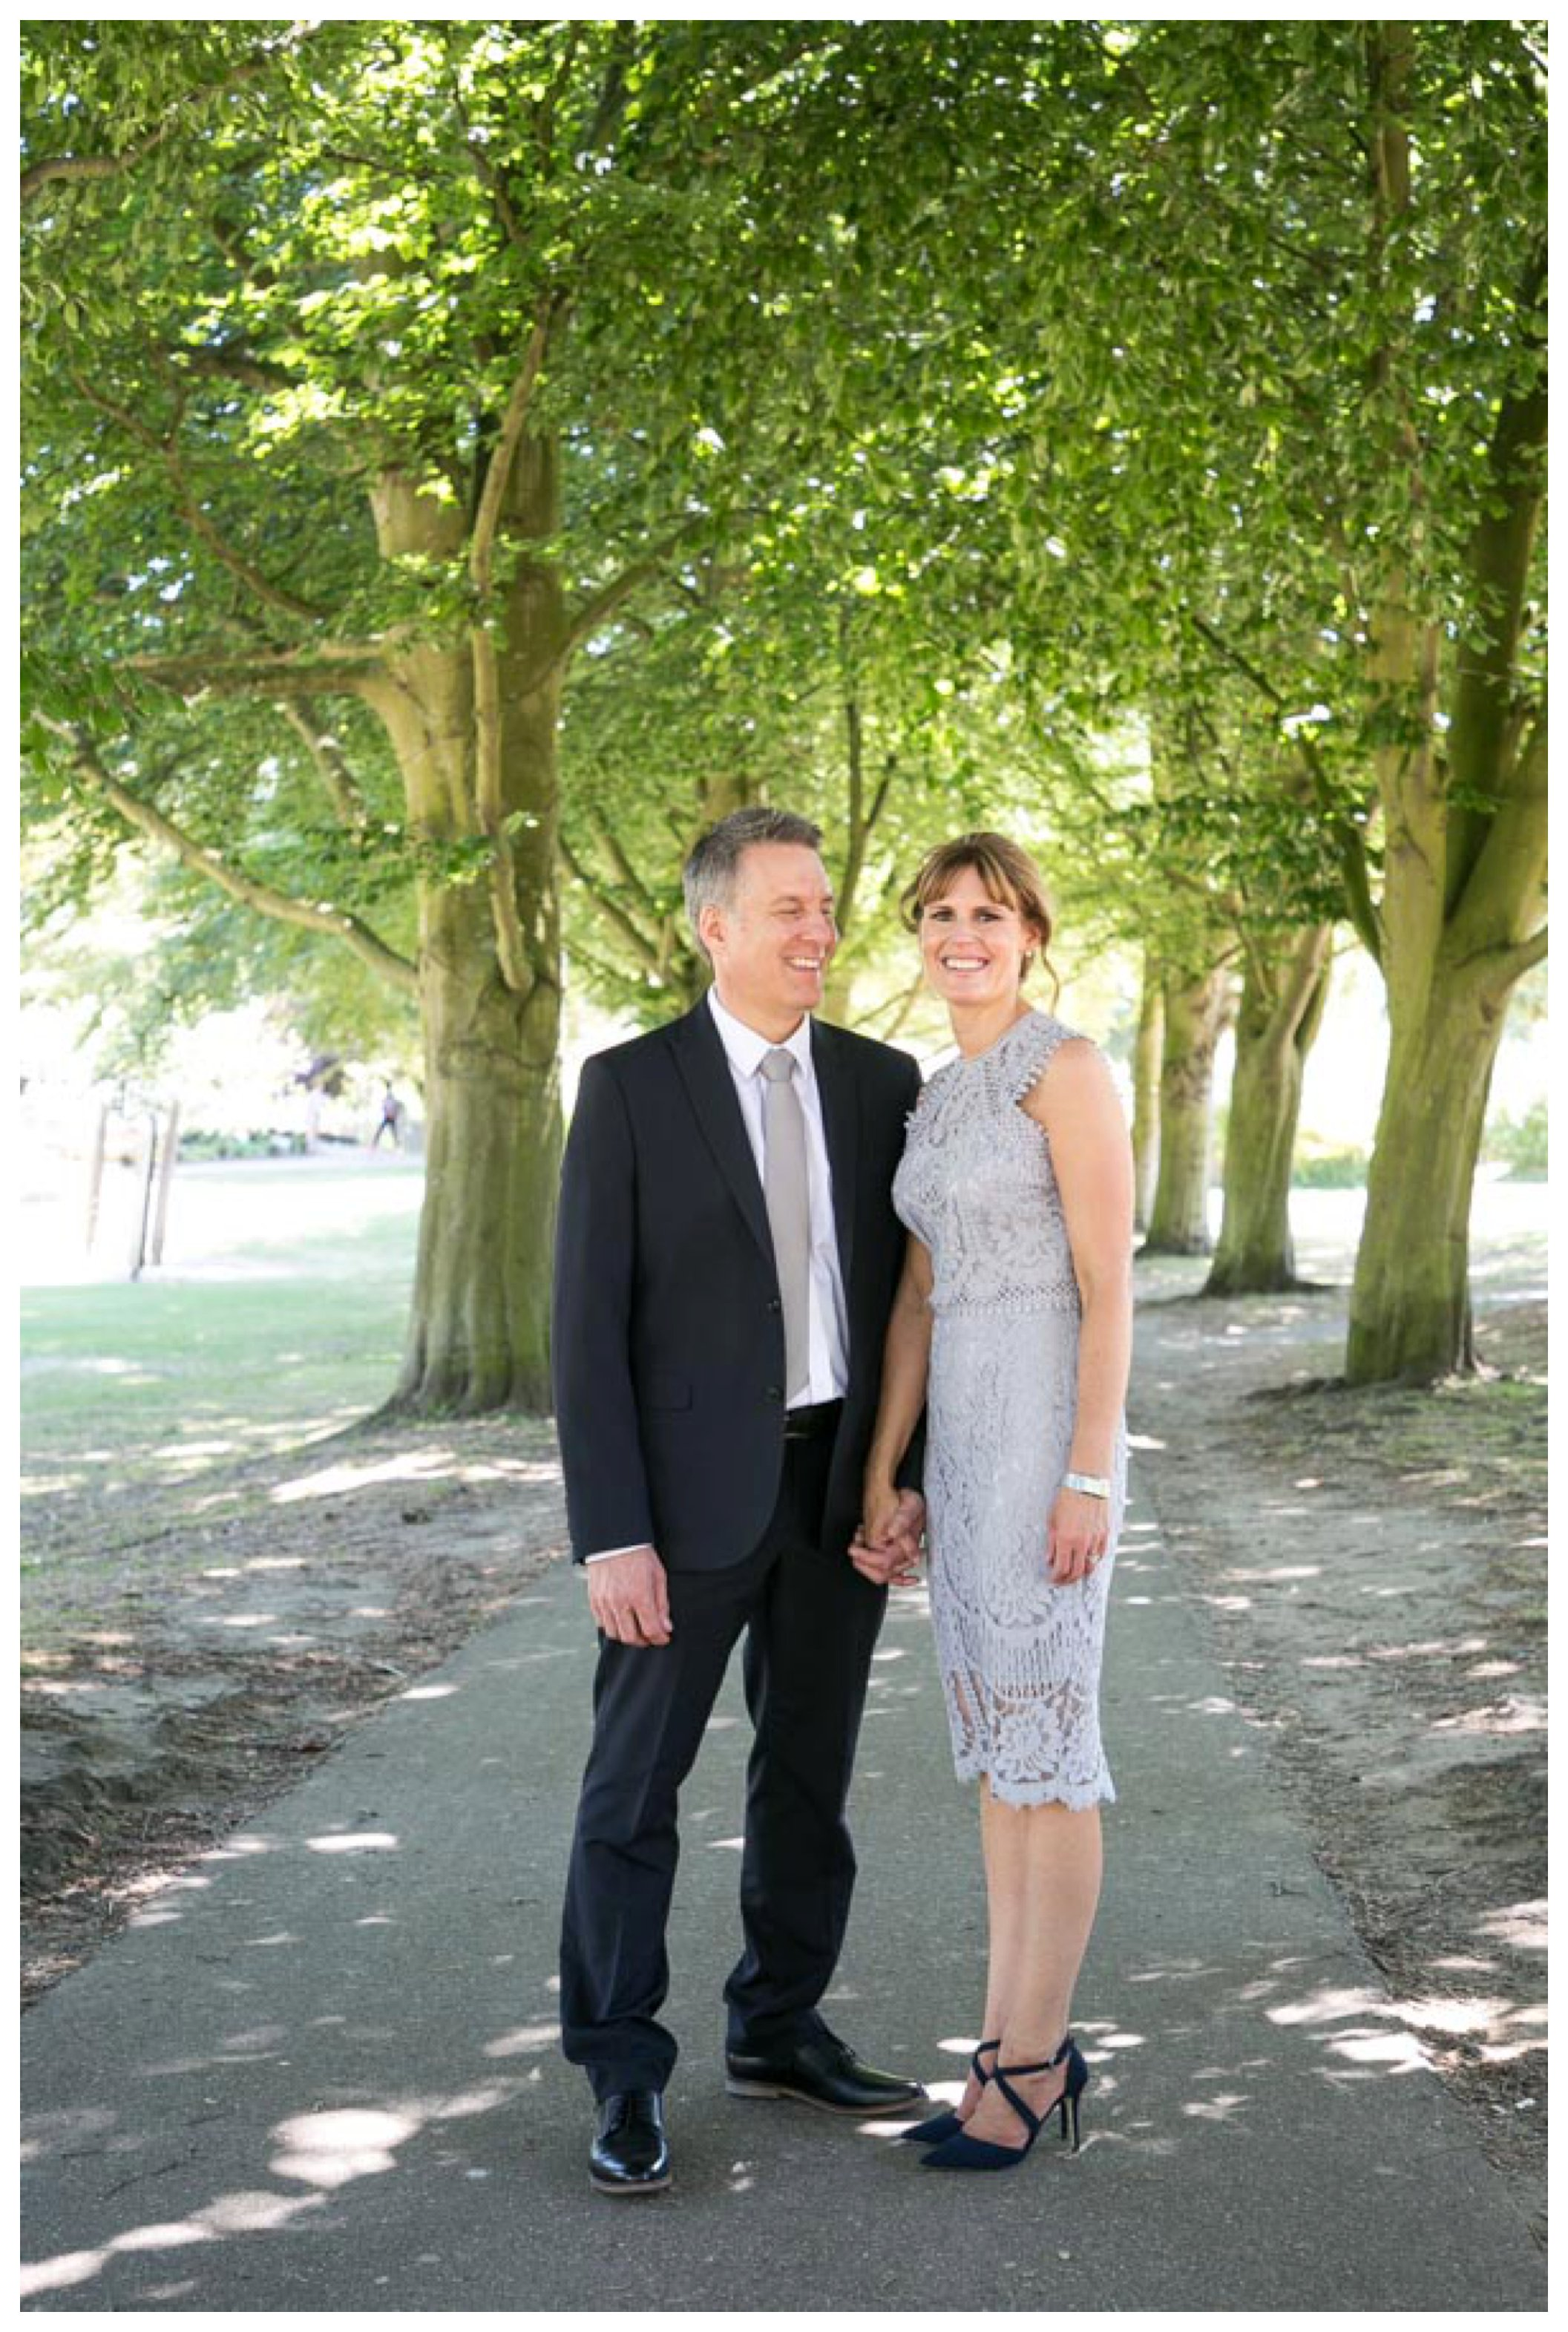 just married couple smiling on pathway with large trees behind